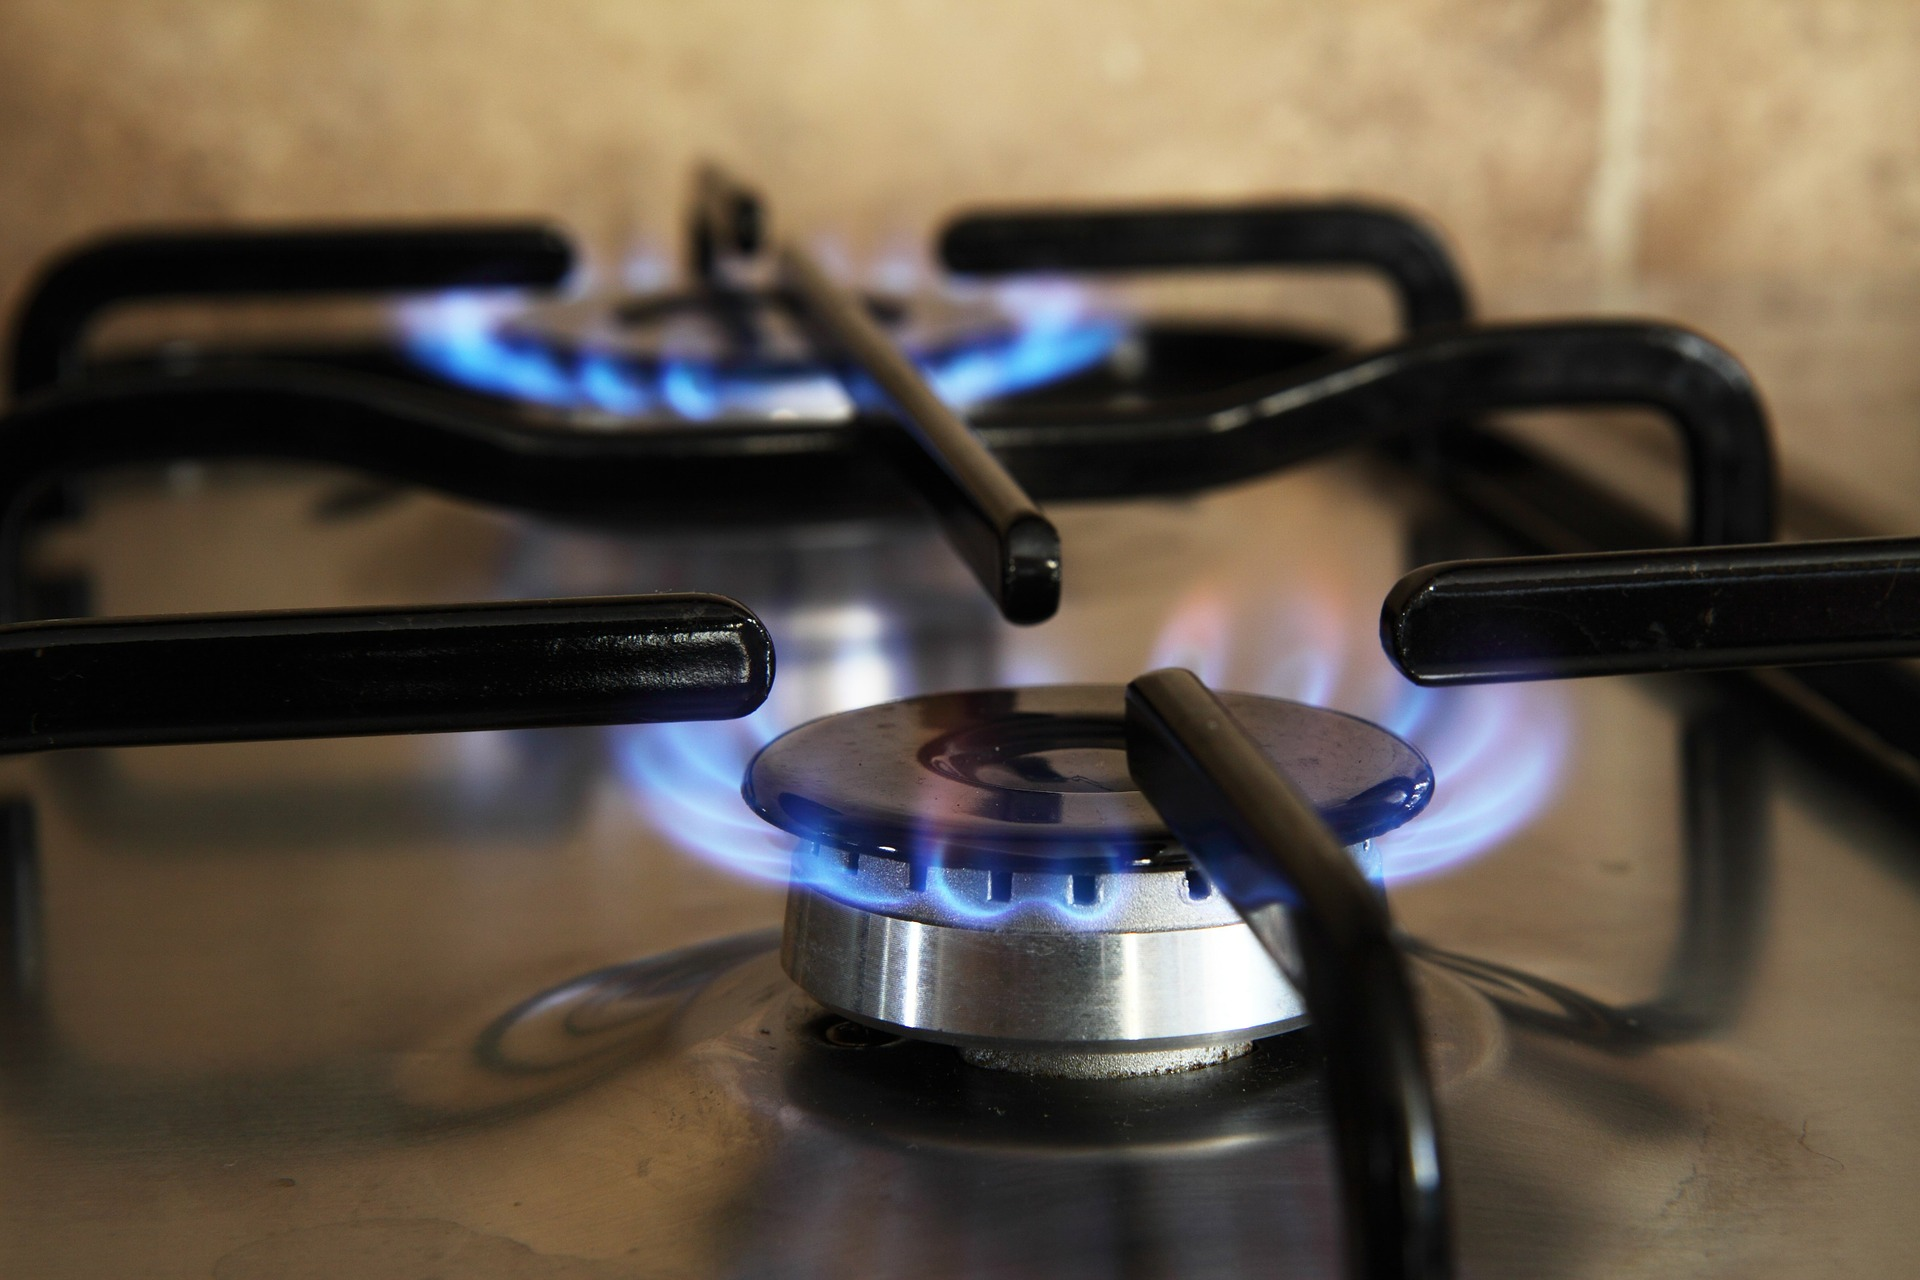 A picture of a gas cooker